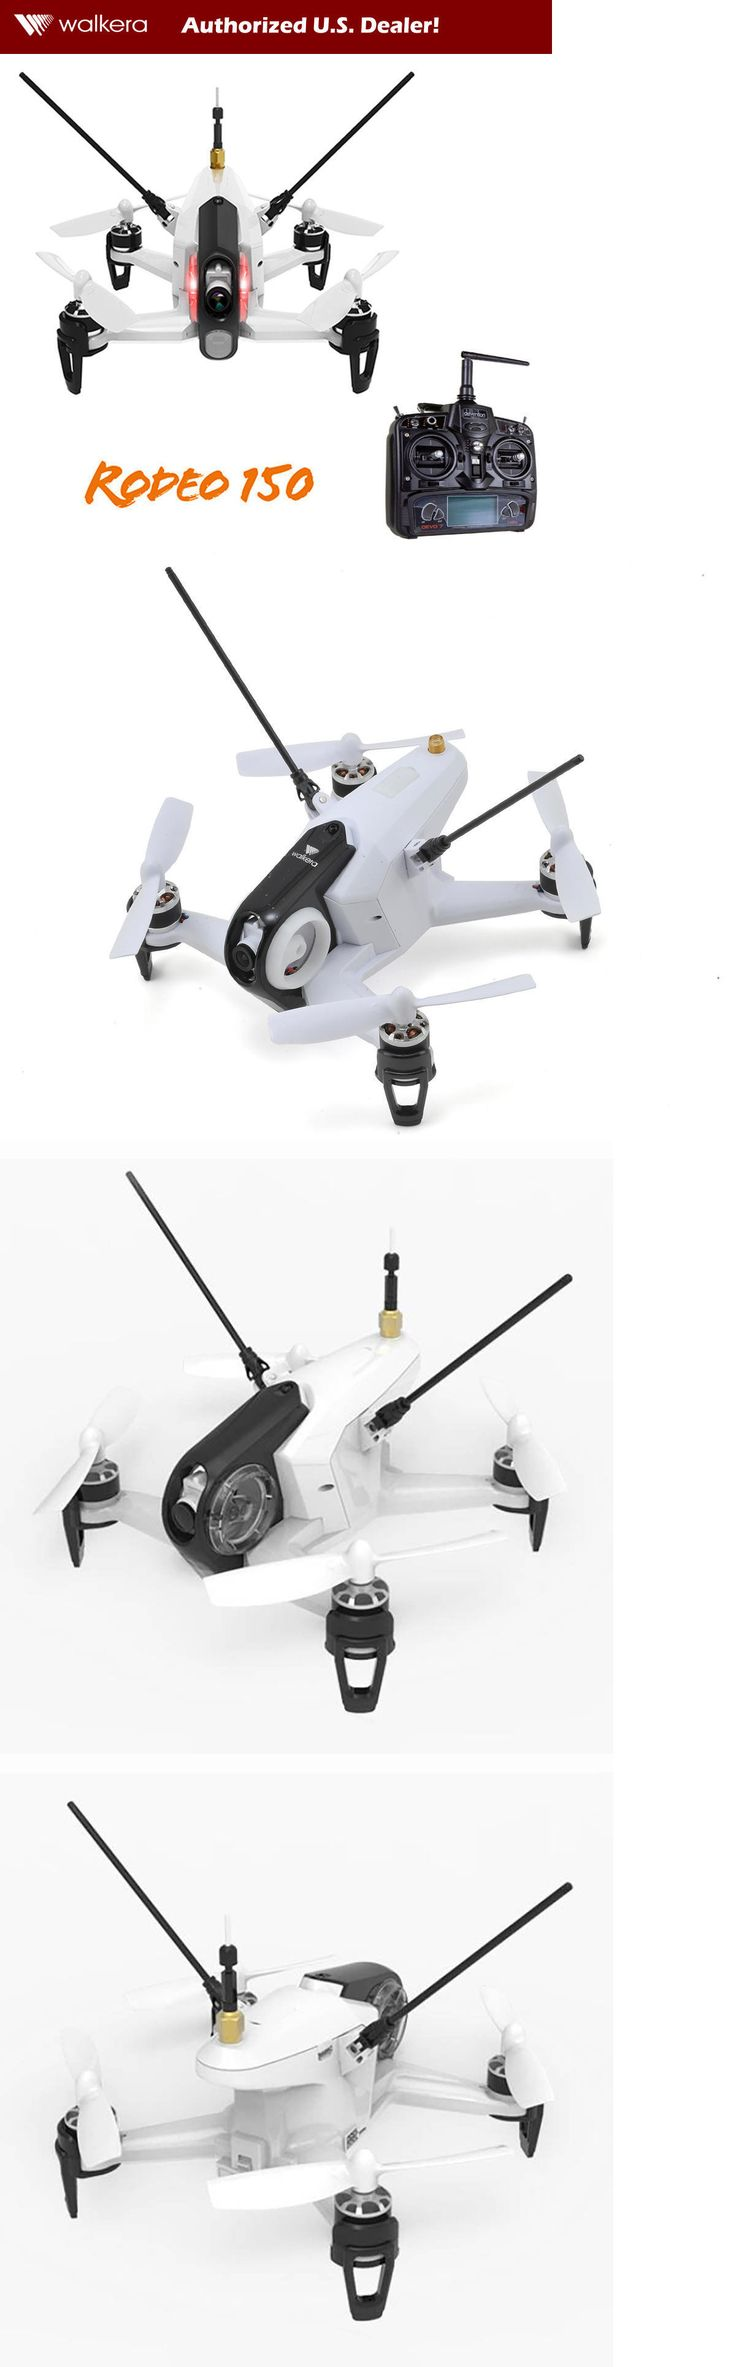 Quadcopters and Multicopters 182185: Walkera Rodeo 150 Rtf Fpv Rc Quadcopter Race Drone W Devo 7, 600 Tvl Cam (White) -> BUY IT NOW ONLY: $179.99 on eBay!